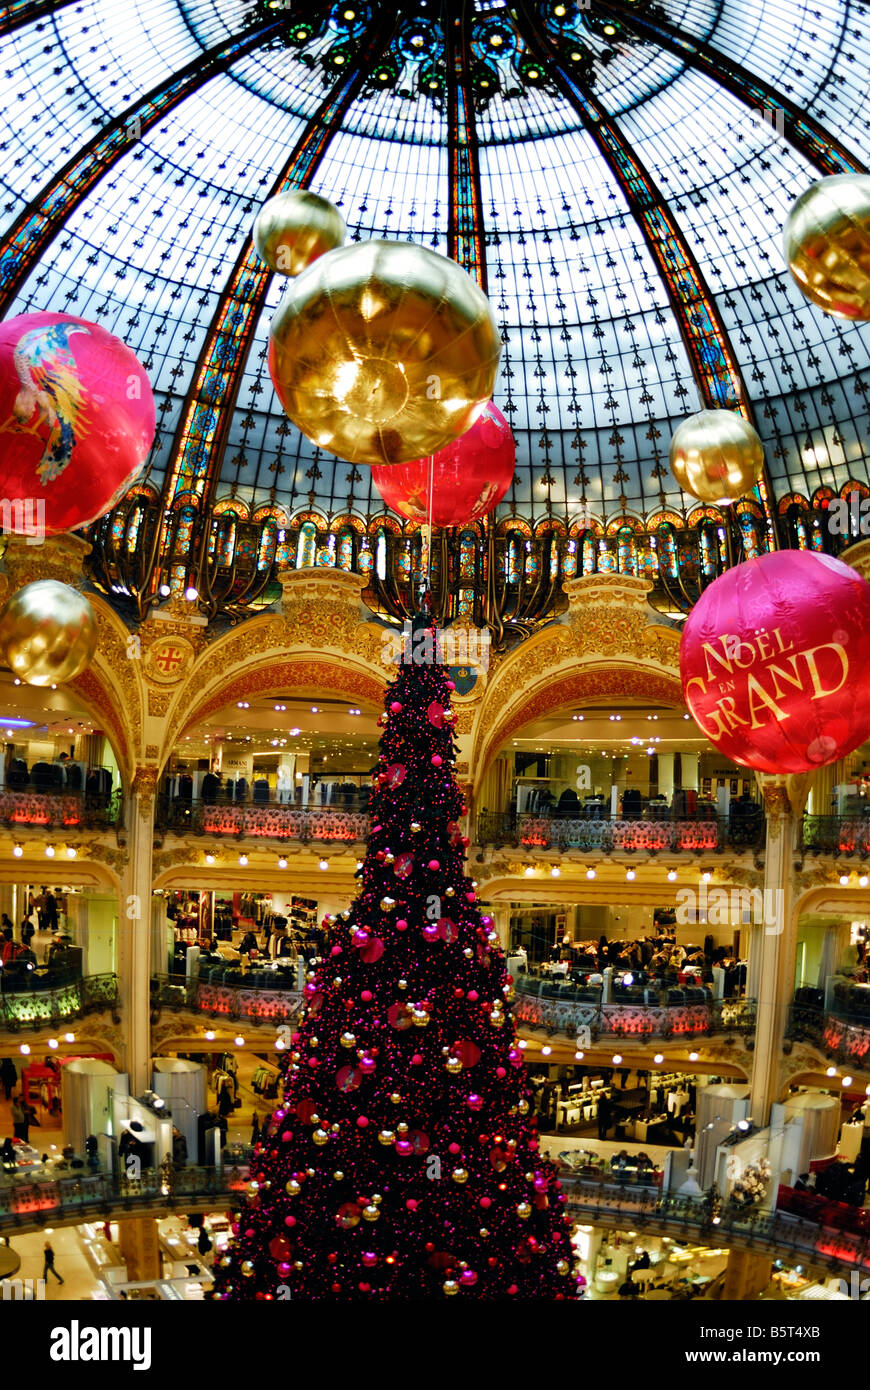 galeries lafayette paris christmas tree stockfotos. Black Bedroom Furniture Sets. Home Design Ideas